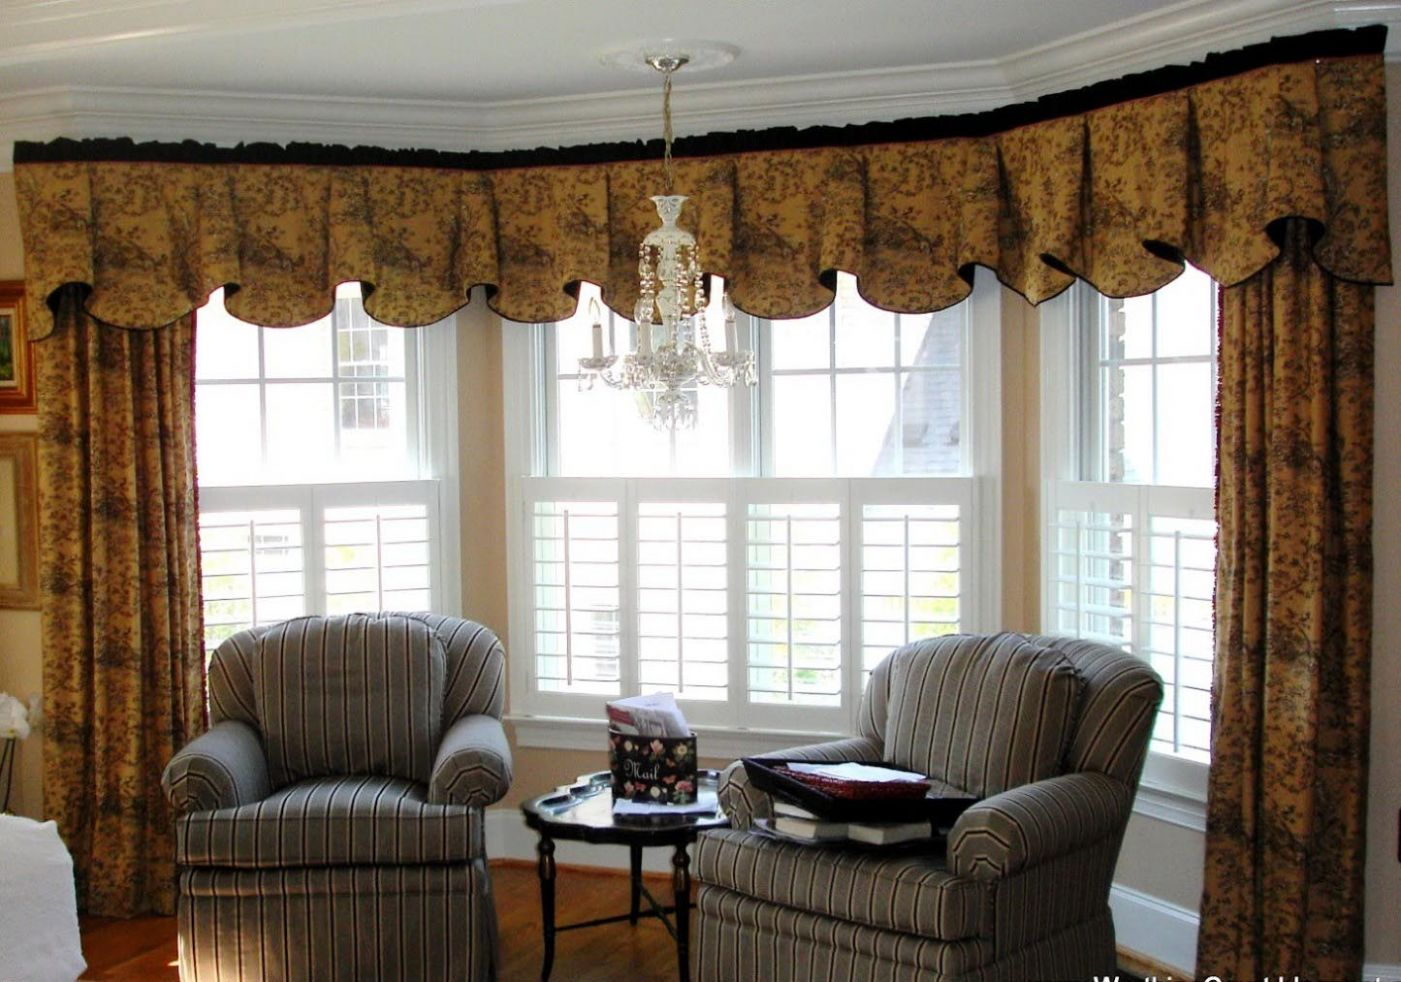 Valance Curtains For Living Room | Window Treatments Design Ideas - window valance ideas living room